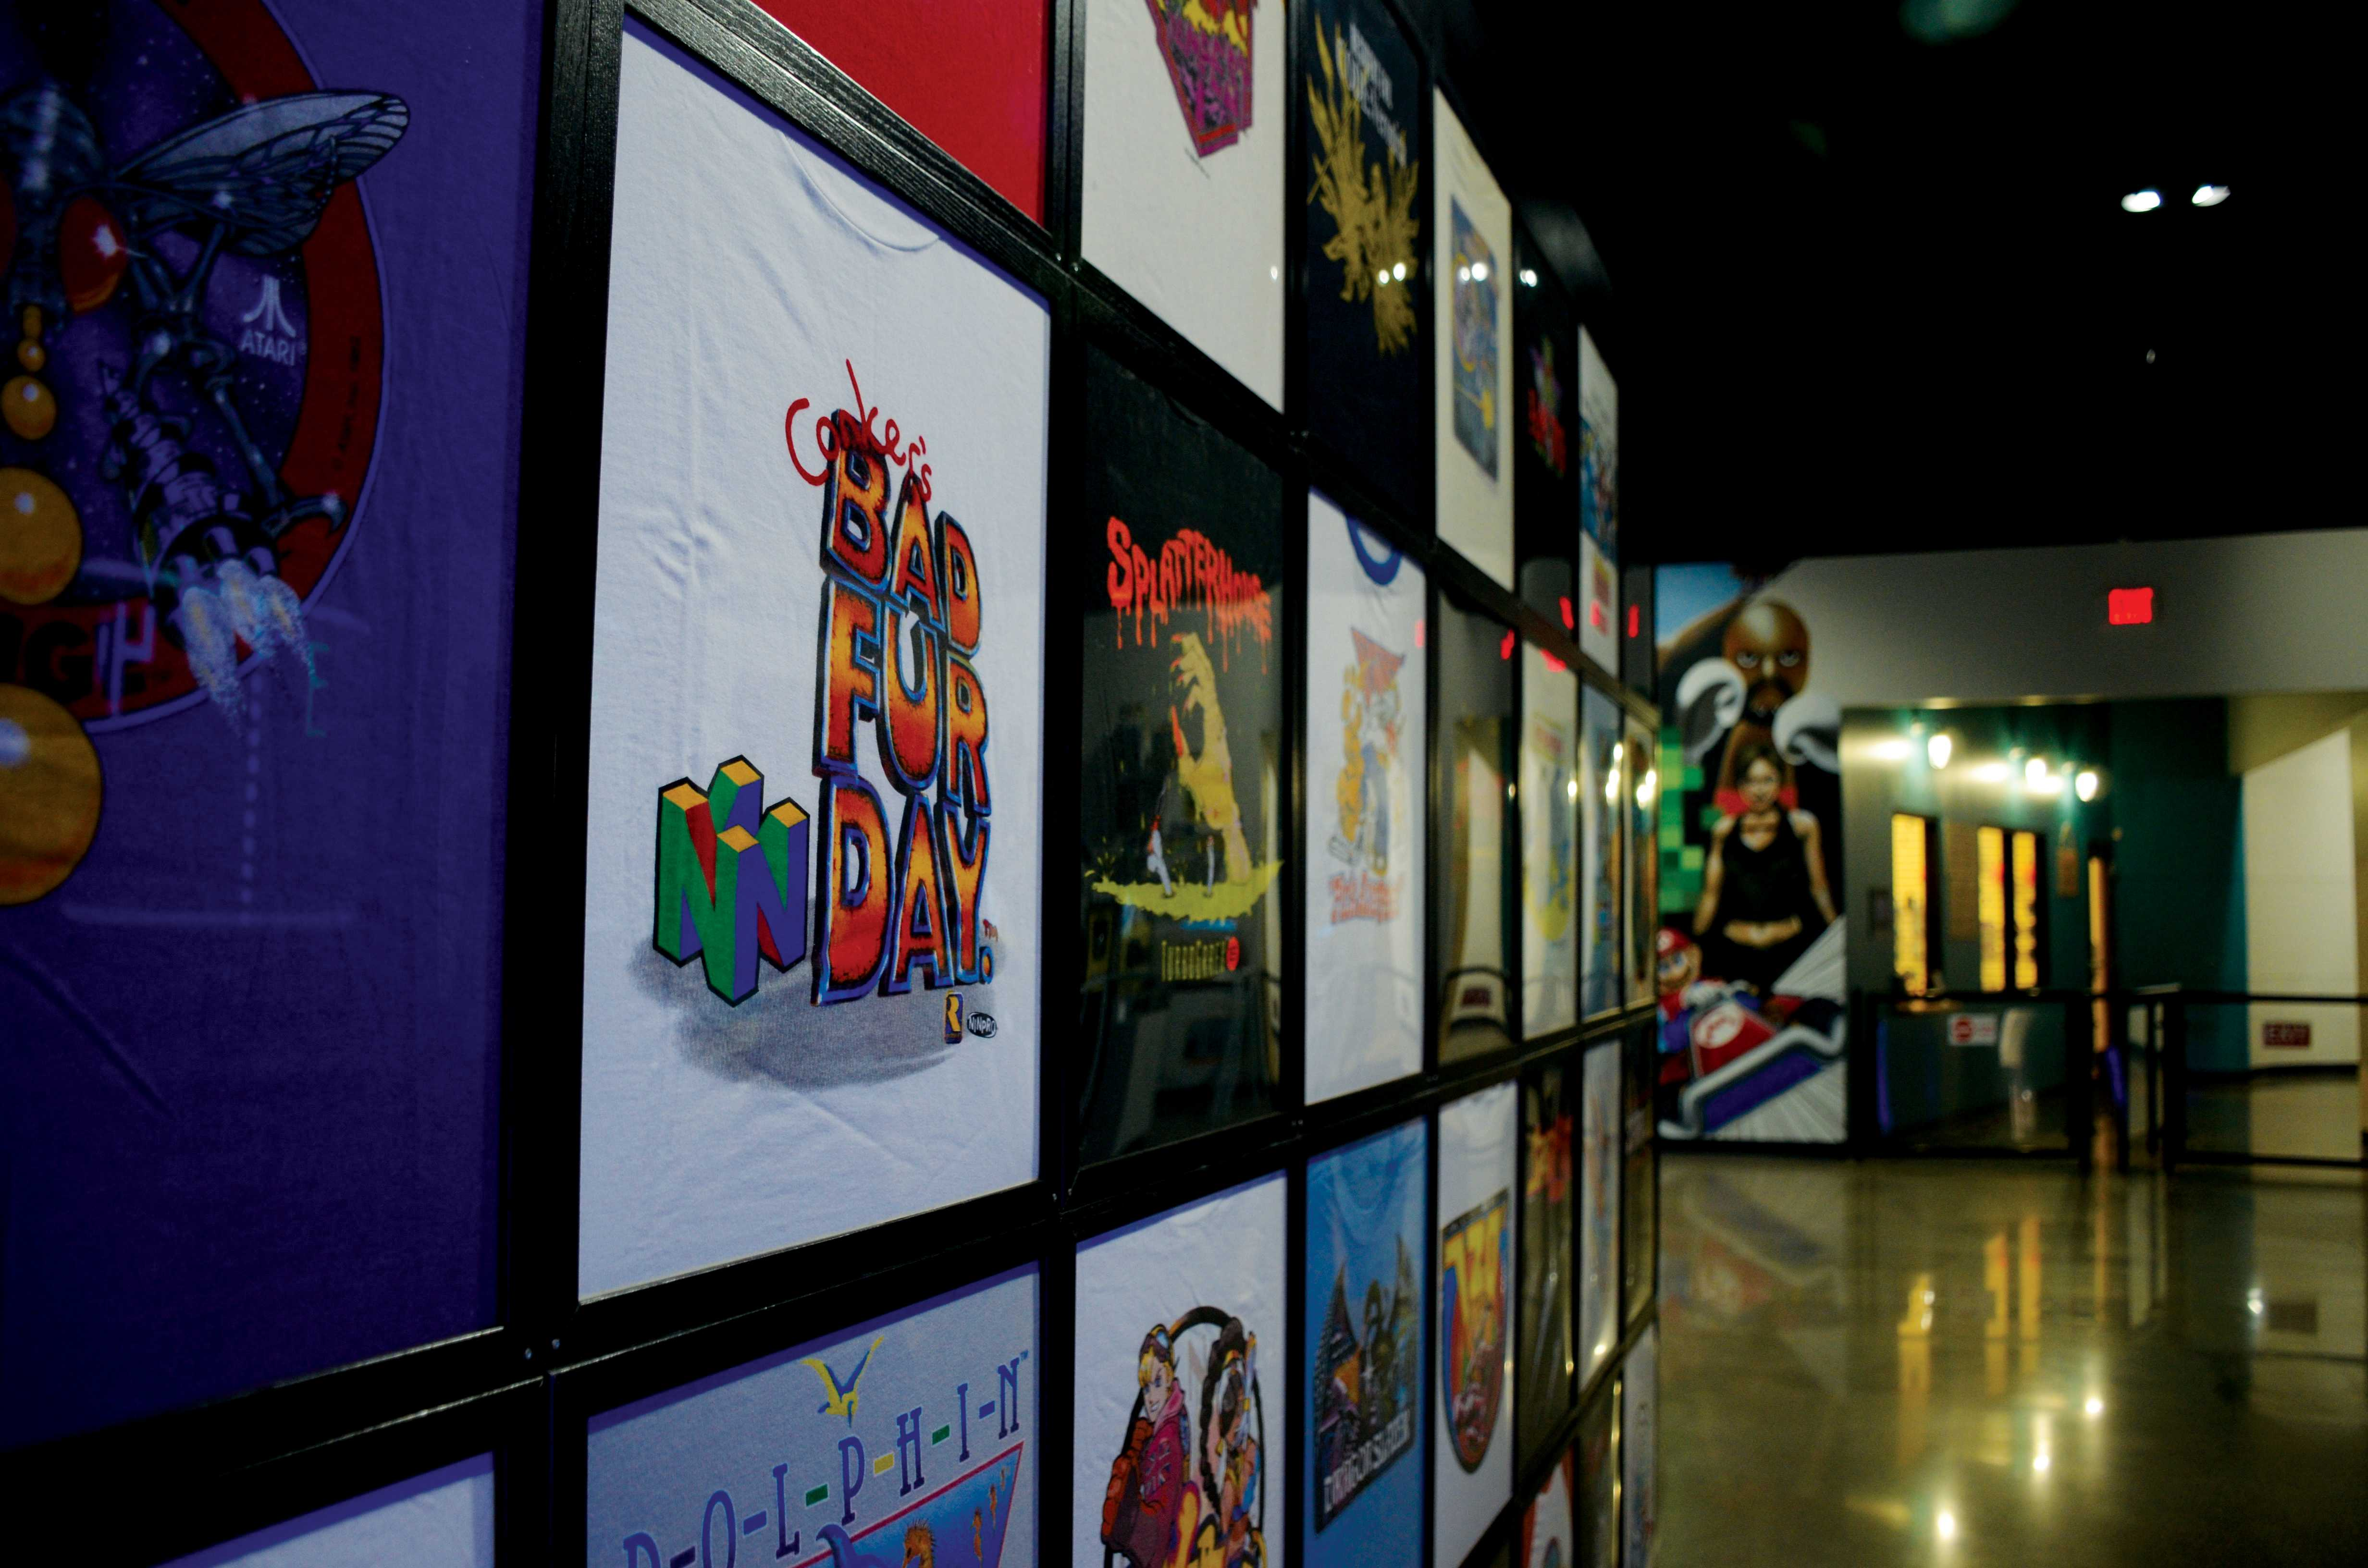 A grid of vintage video game T-shirts hang on a wall in the museum.